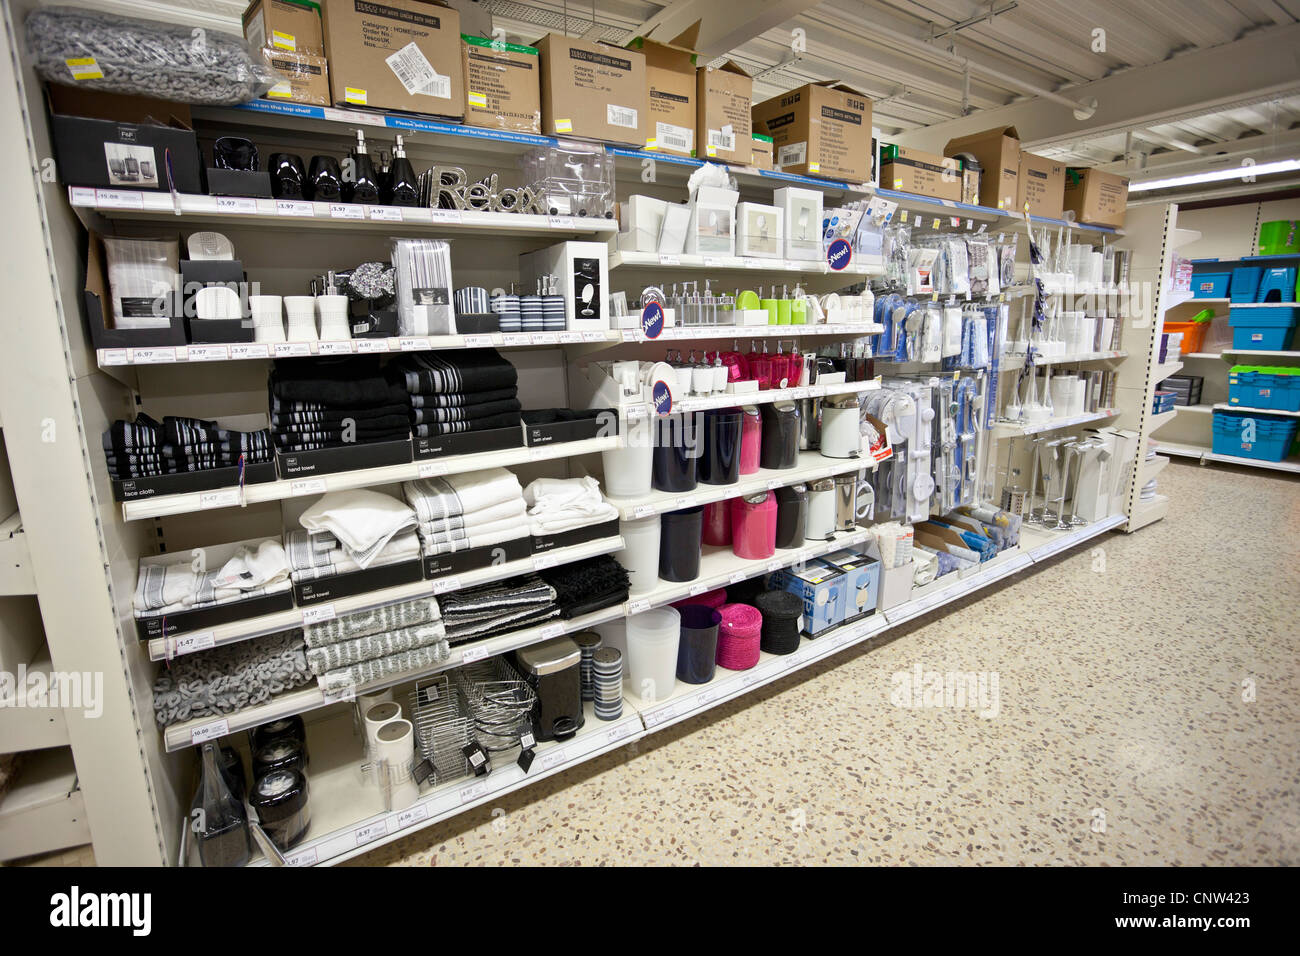 Delightful Bathroom Accessories And Toweling Shelves Of A Shop, London, England, UK